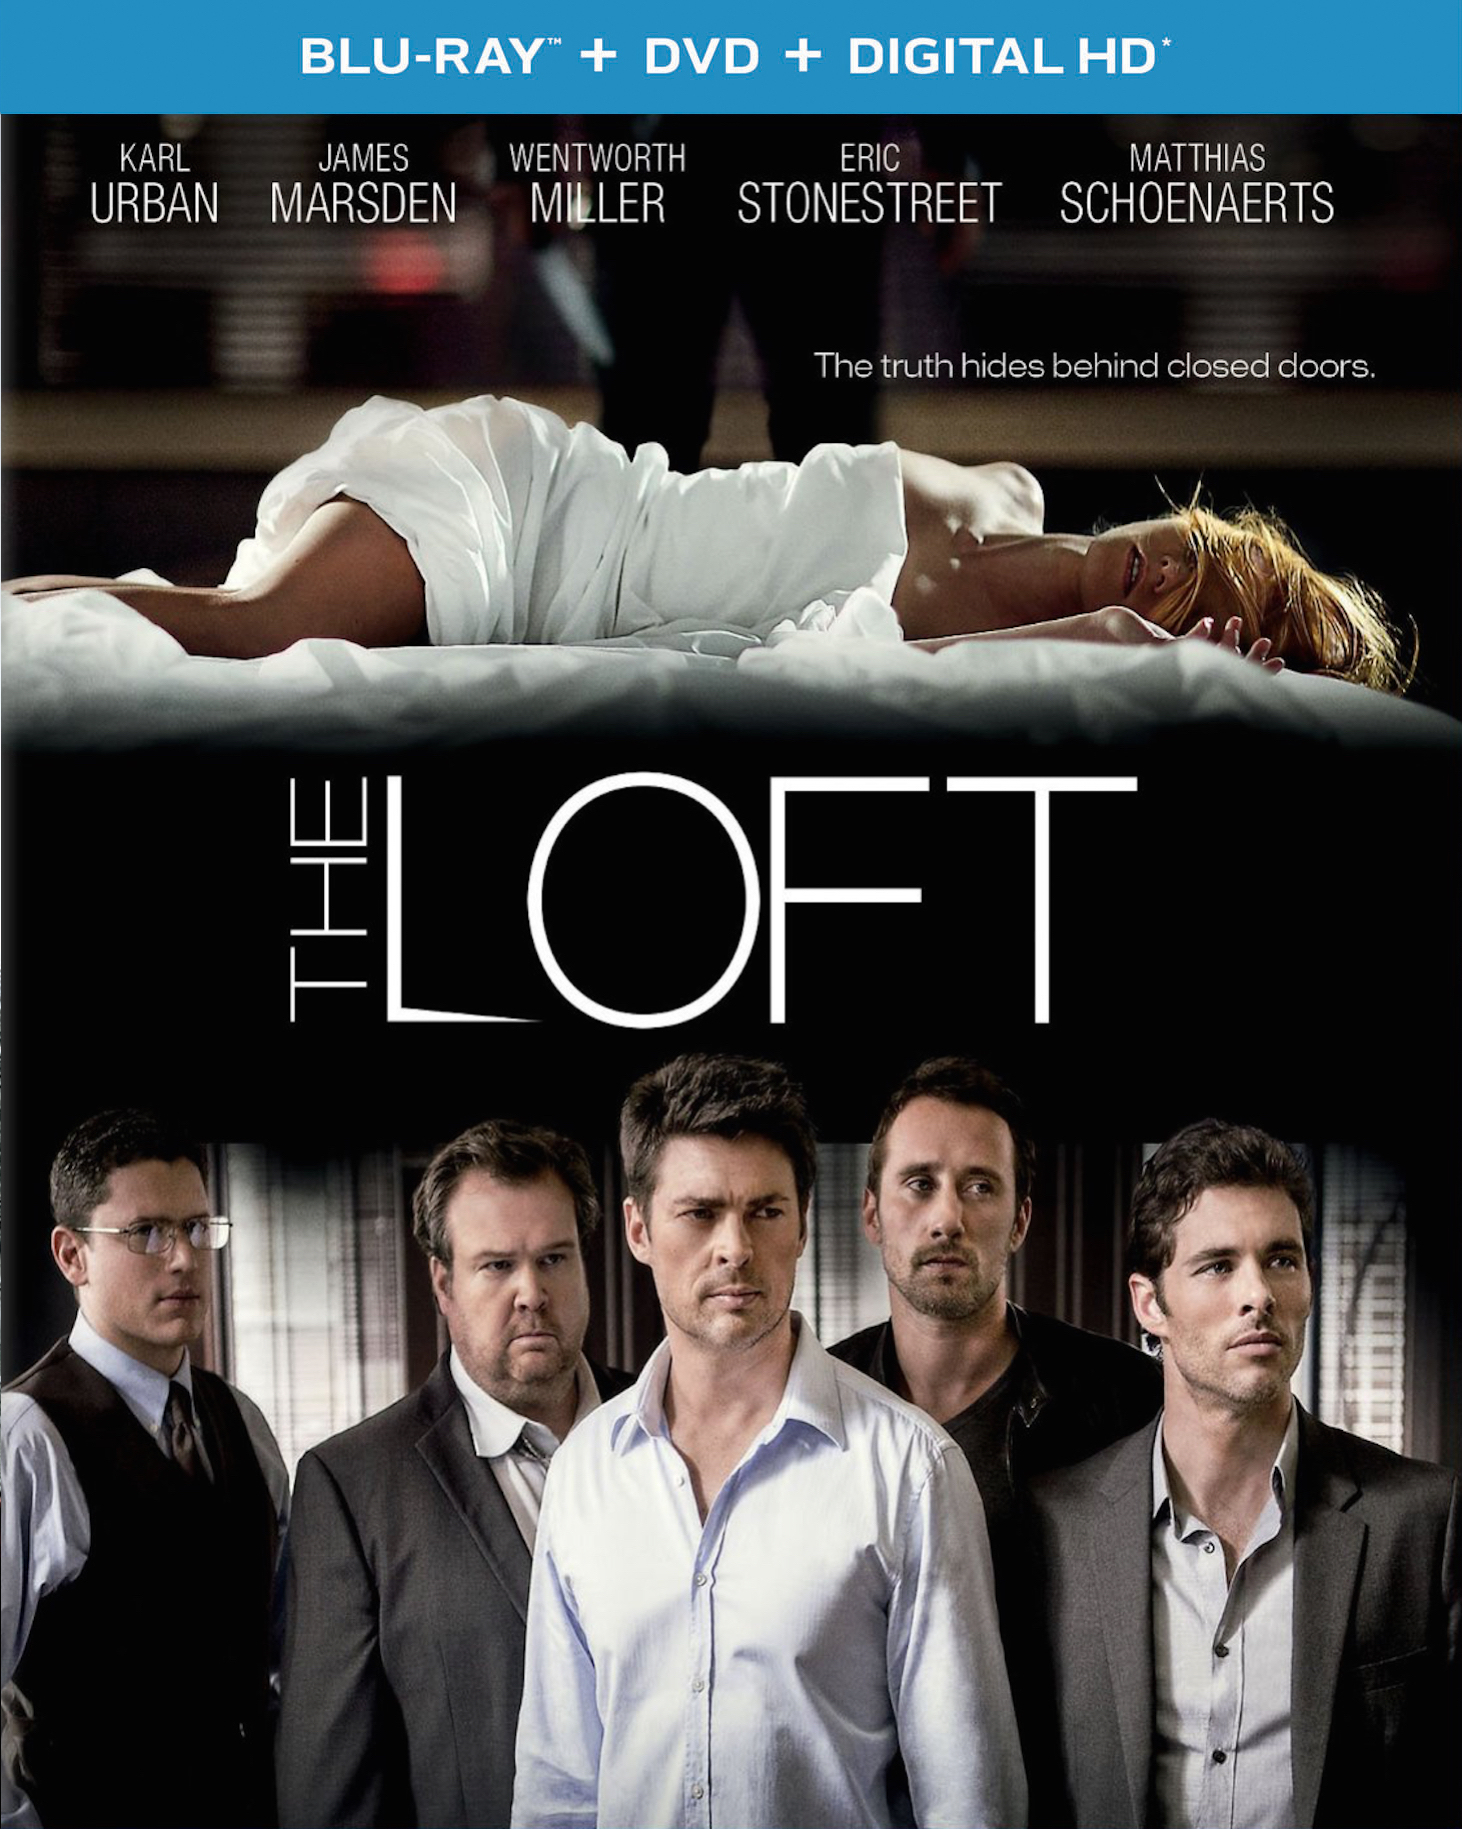 The Loft Blu-ray Review